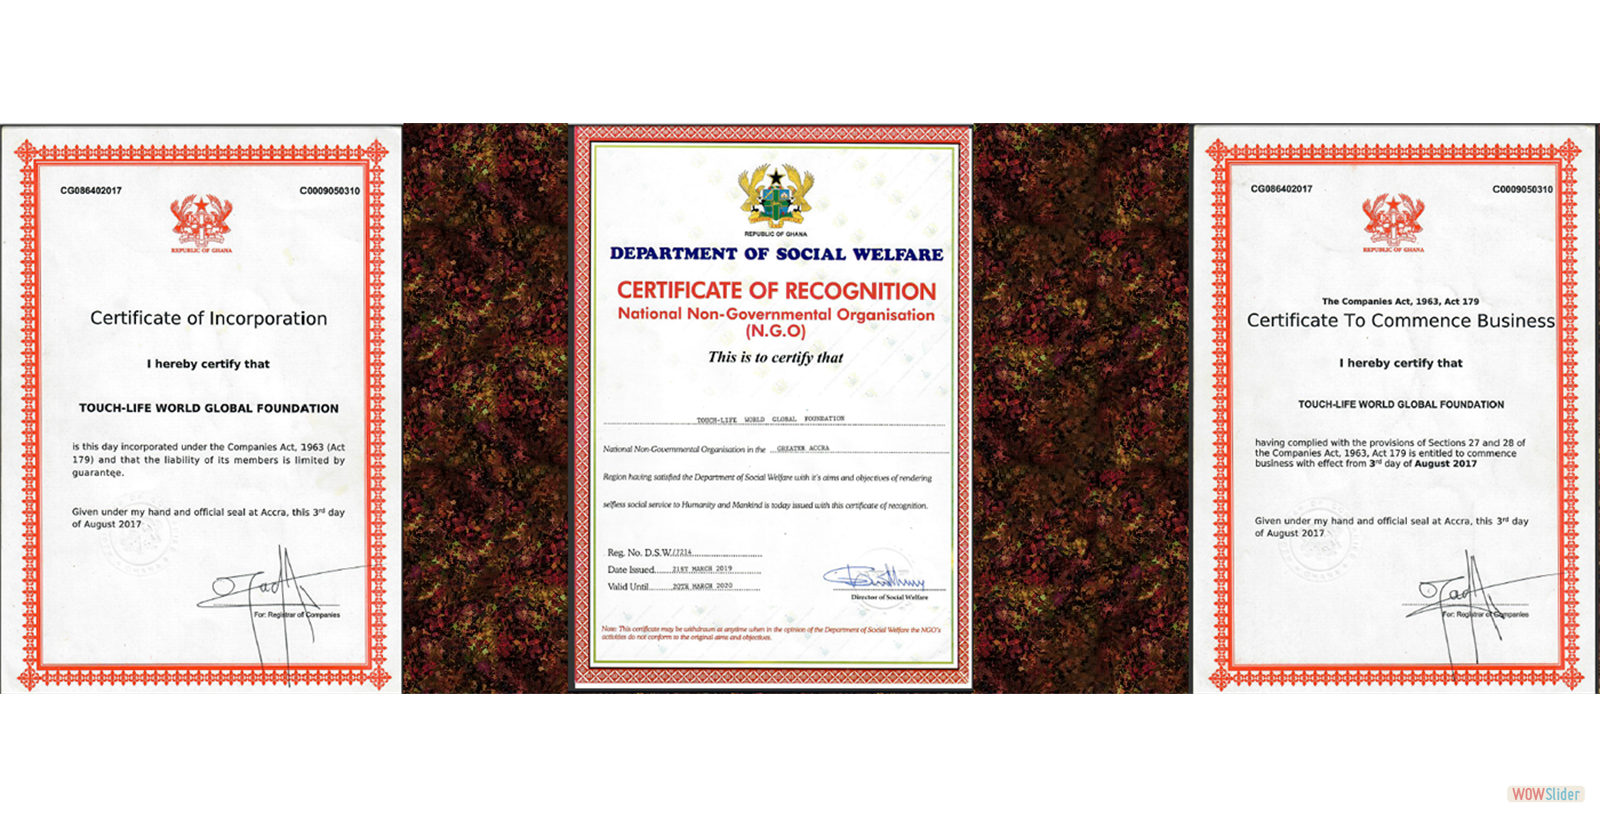 Our Certificate of Incorporation In Ghana